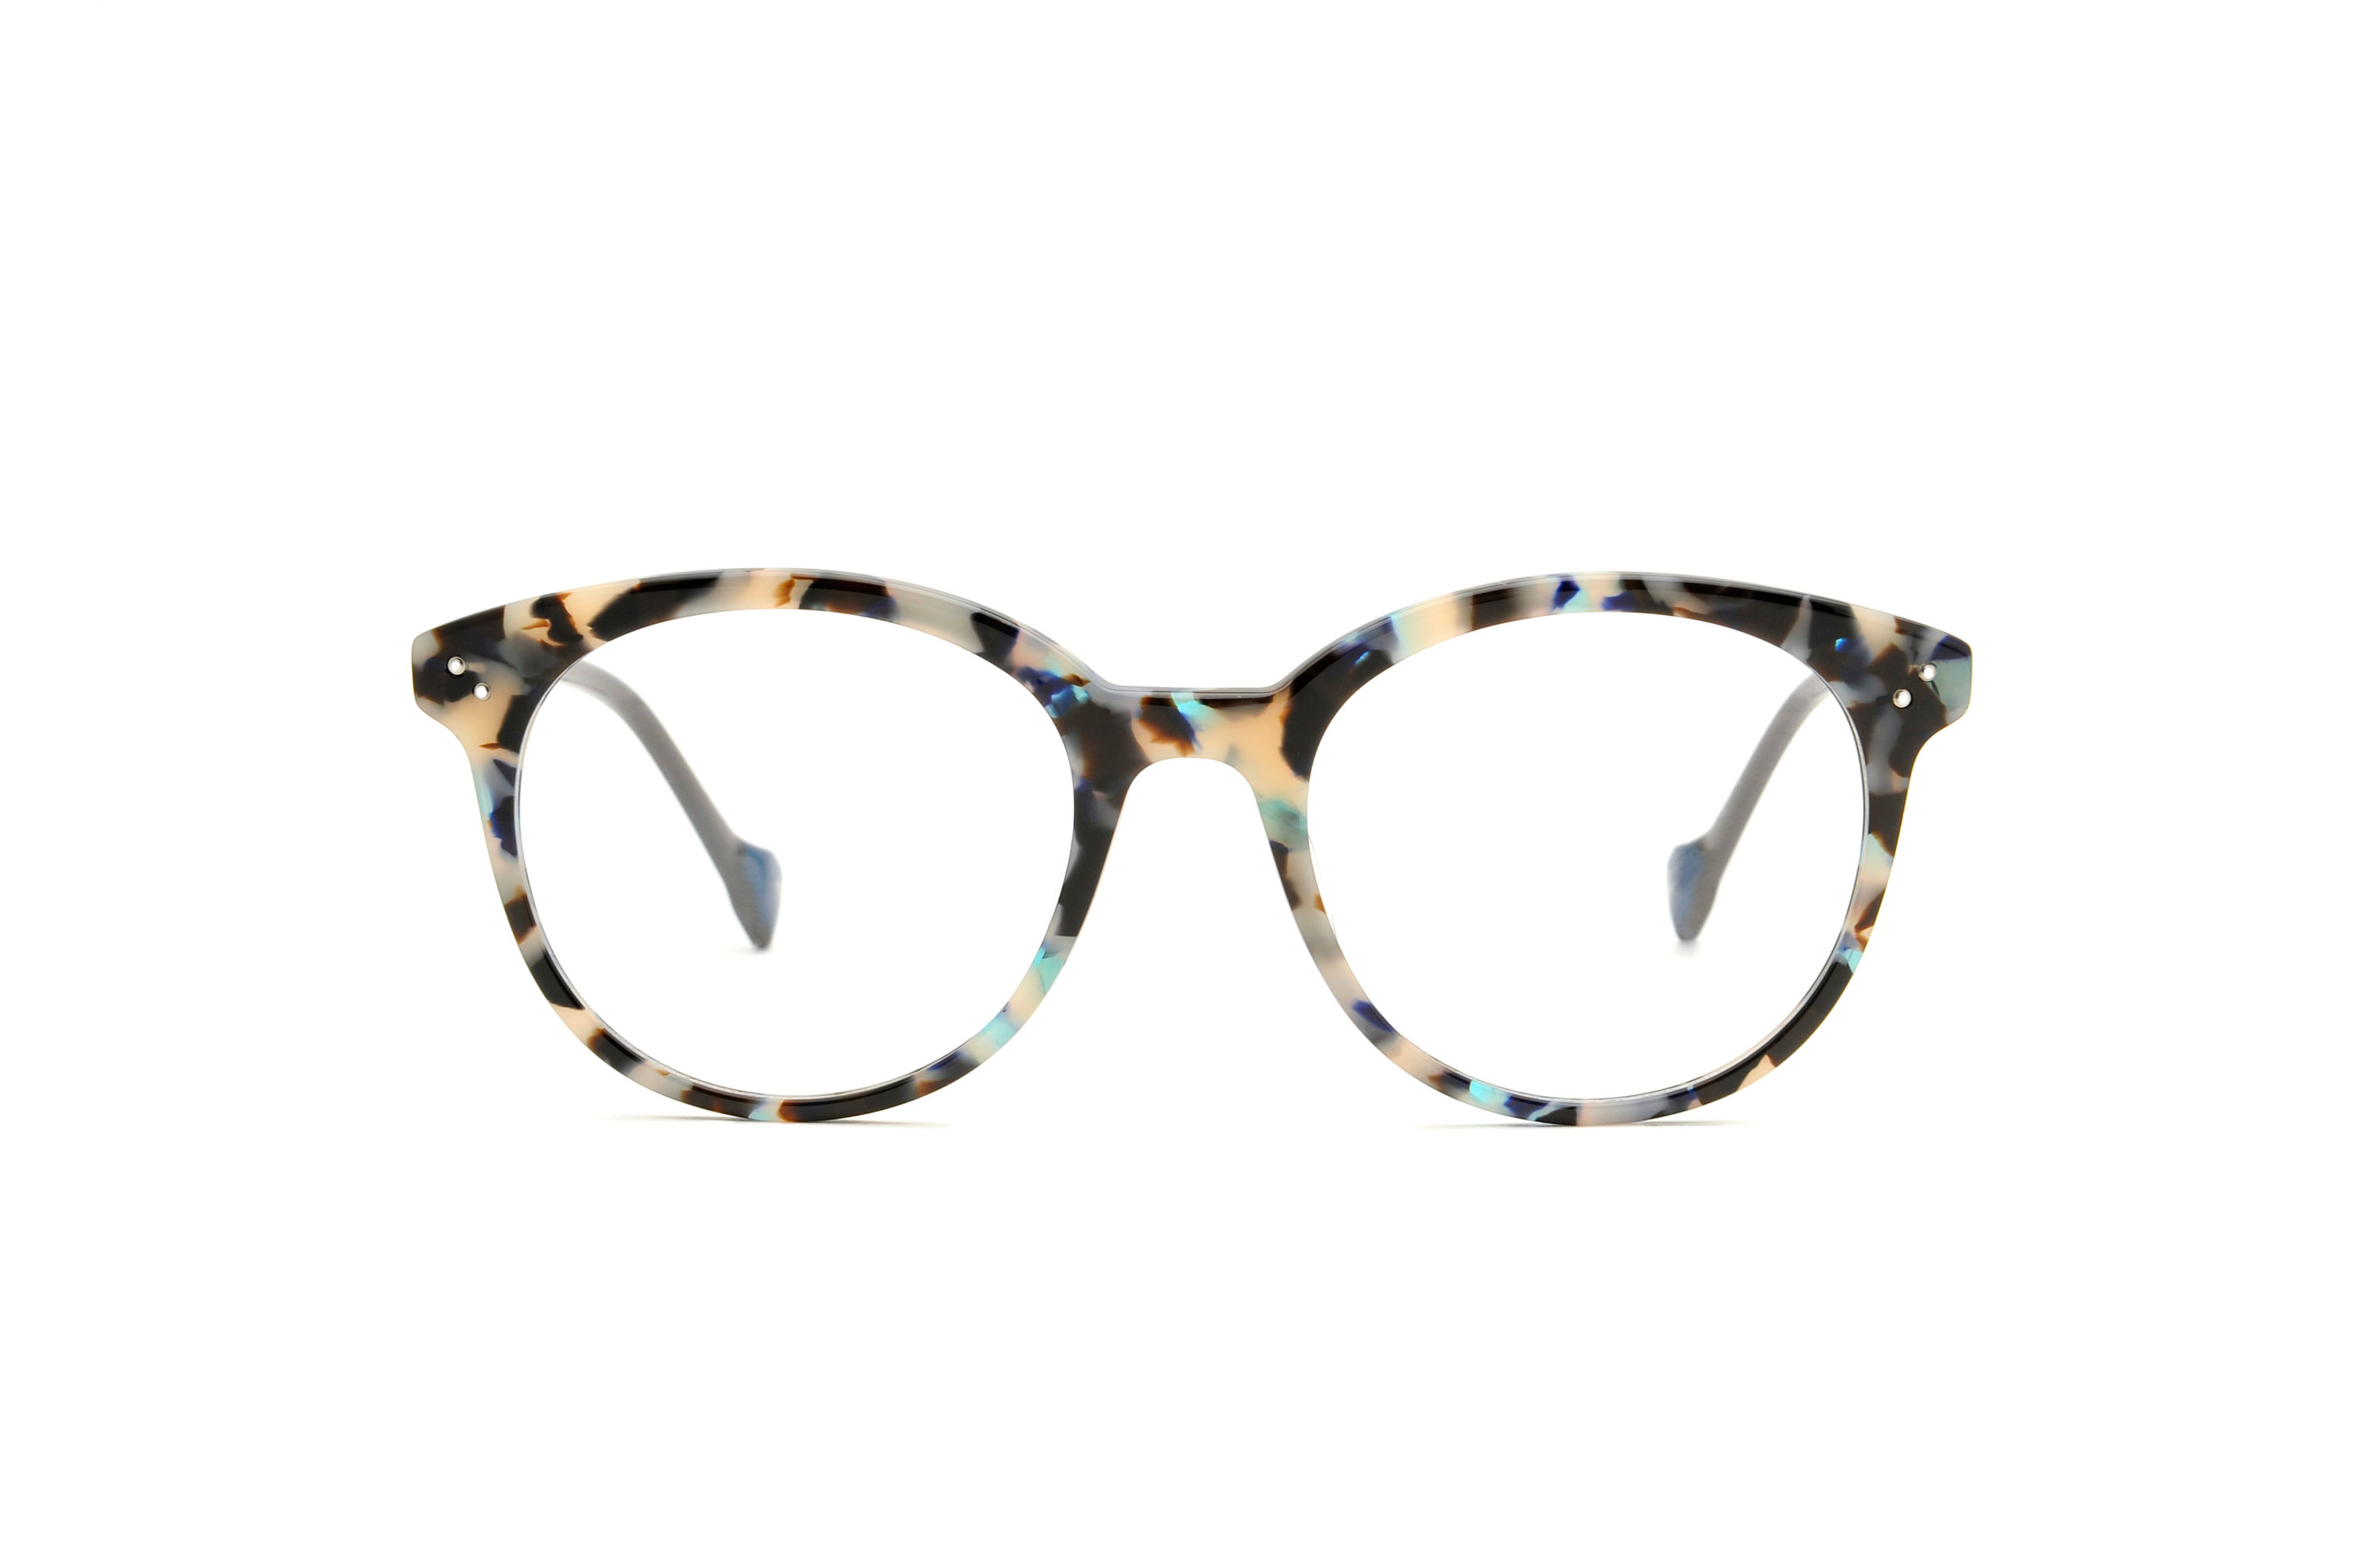 Mitra acetate rounded tortoise sunglasses by GIGI Studios